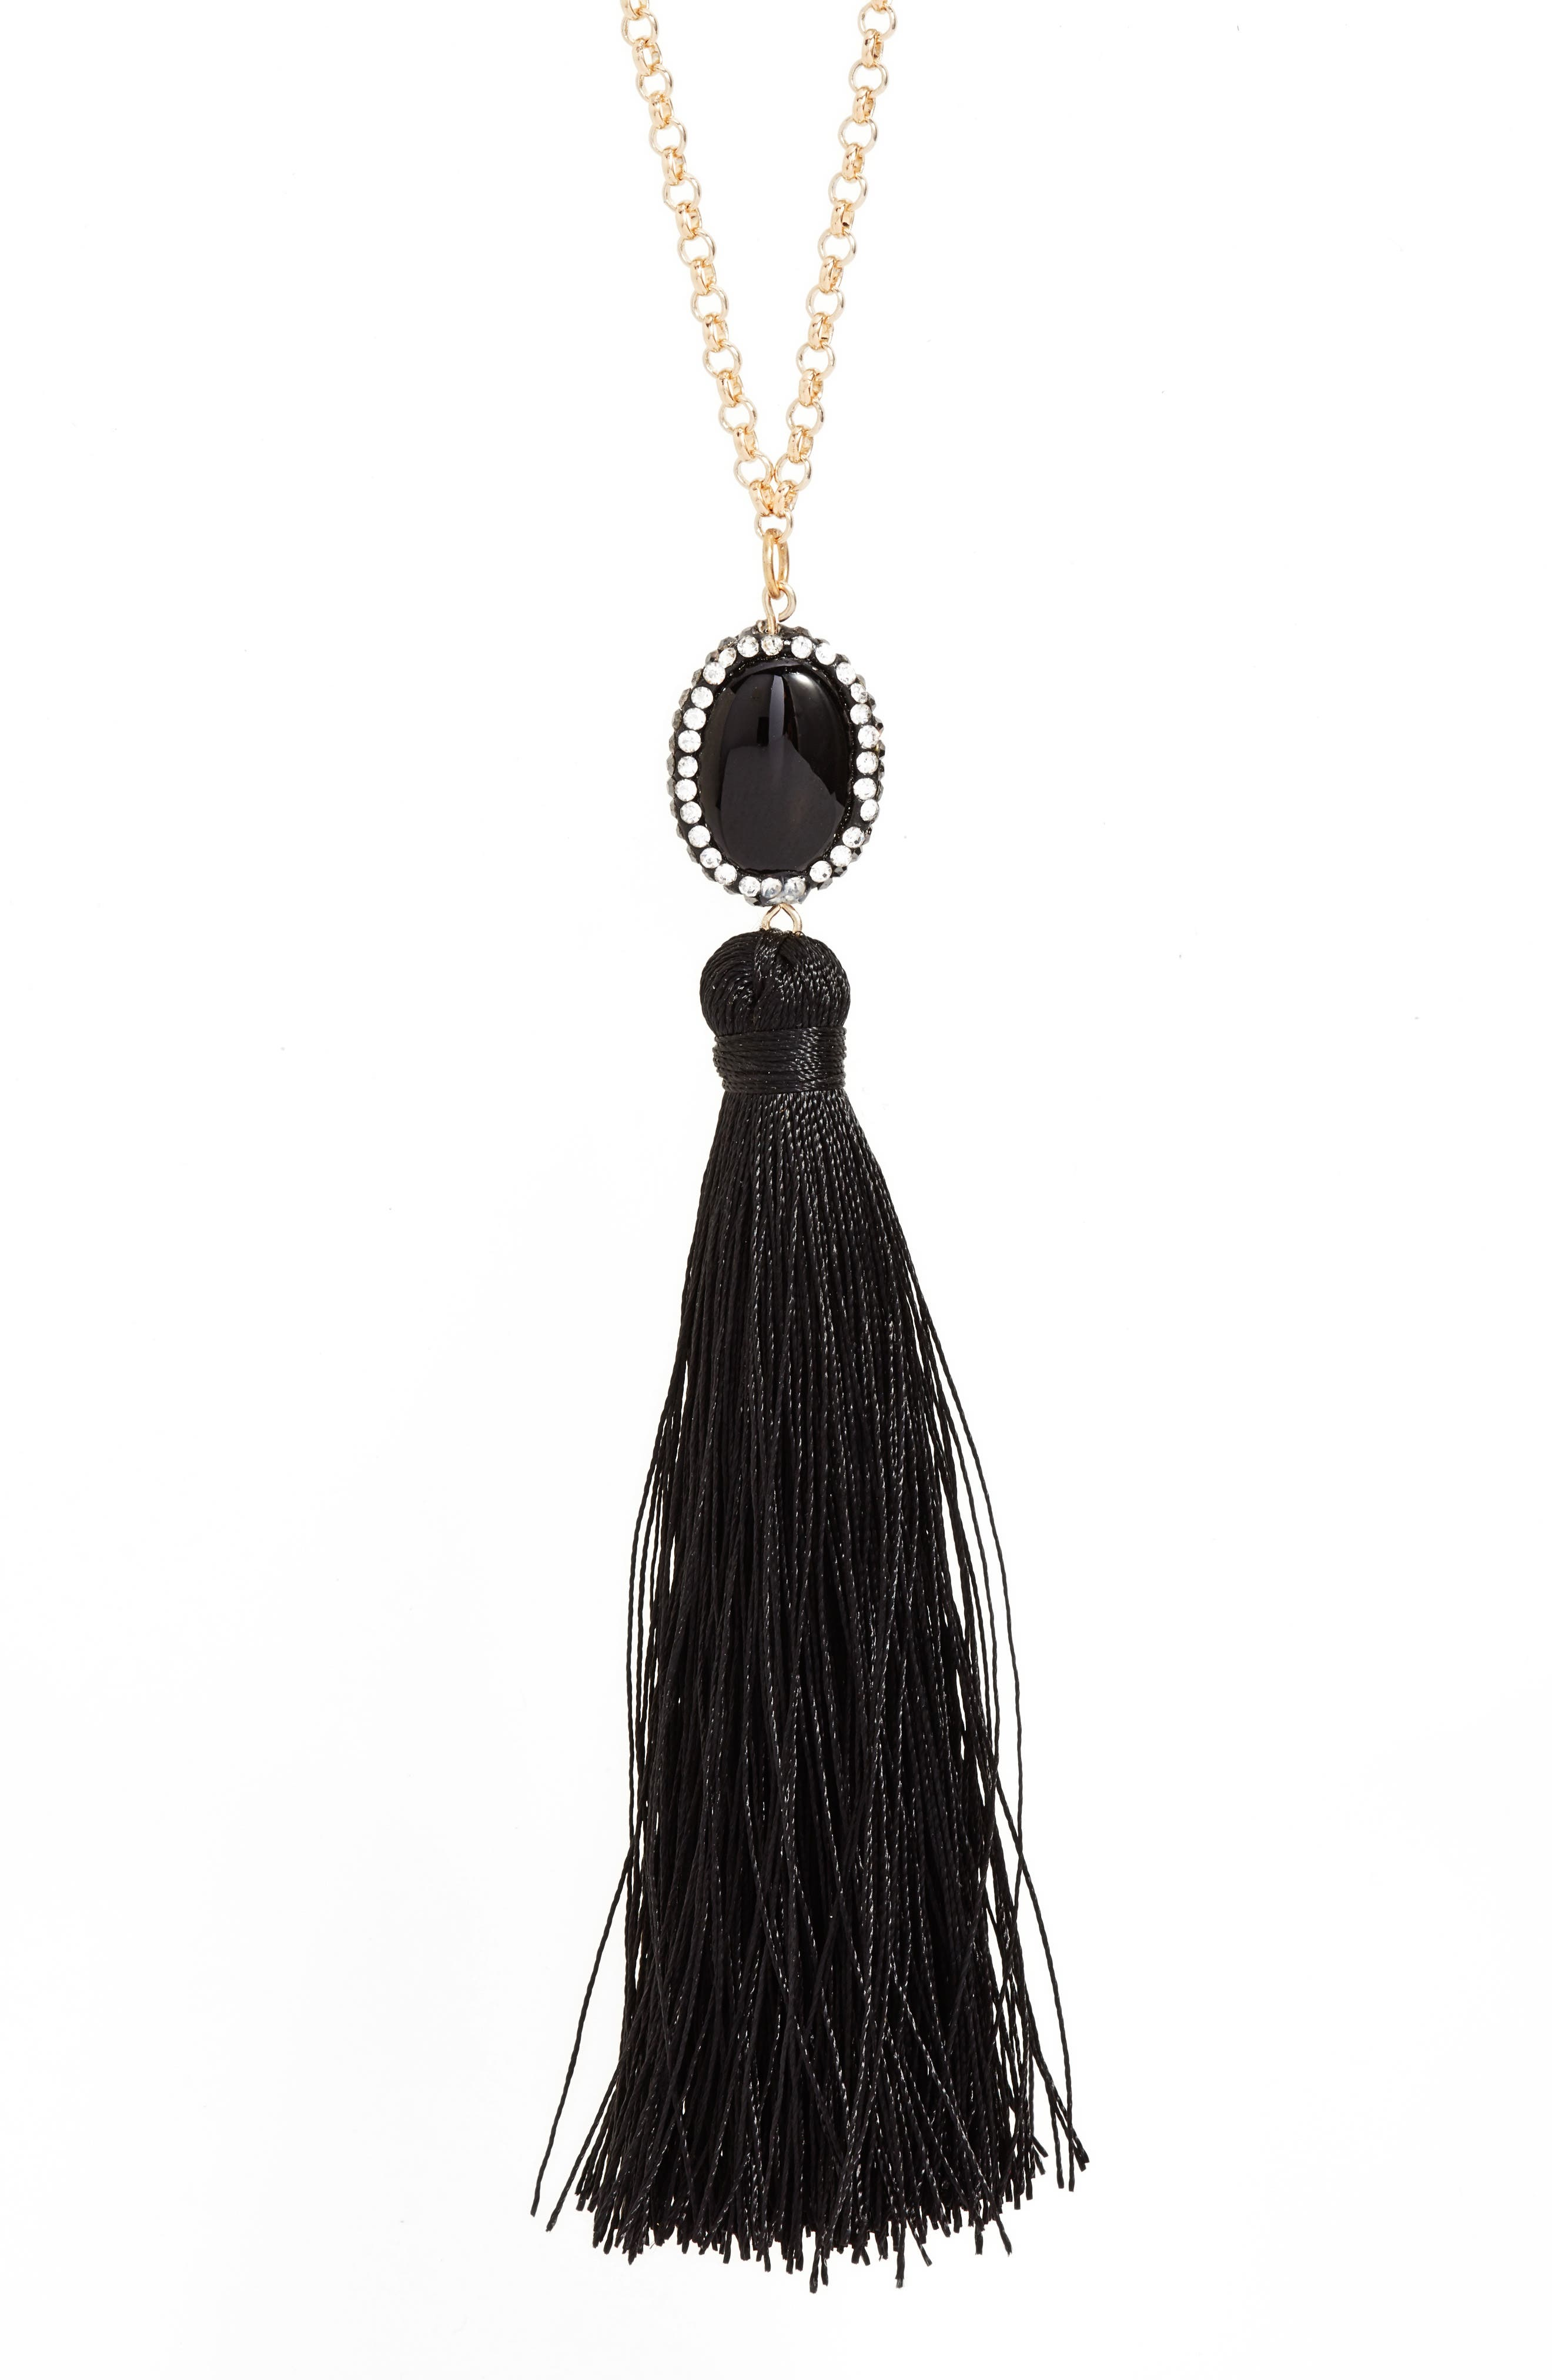 Beaded Tassel Necklace,                             Alternate thumbnail 2, color,                             001